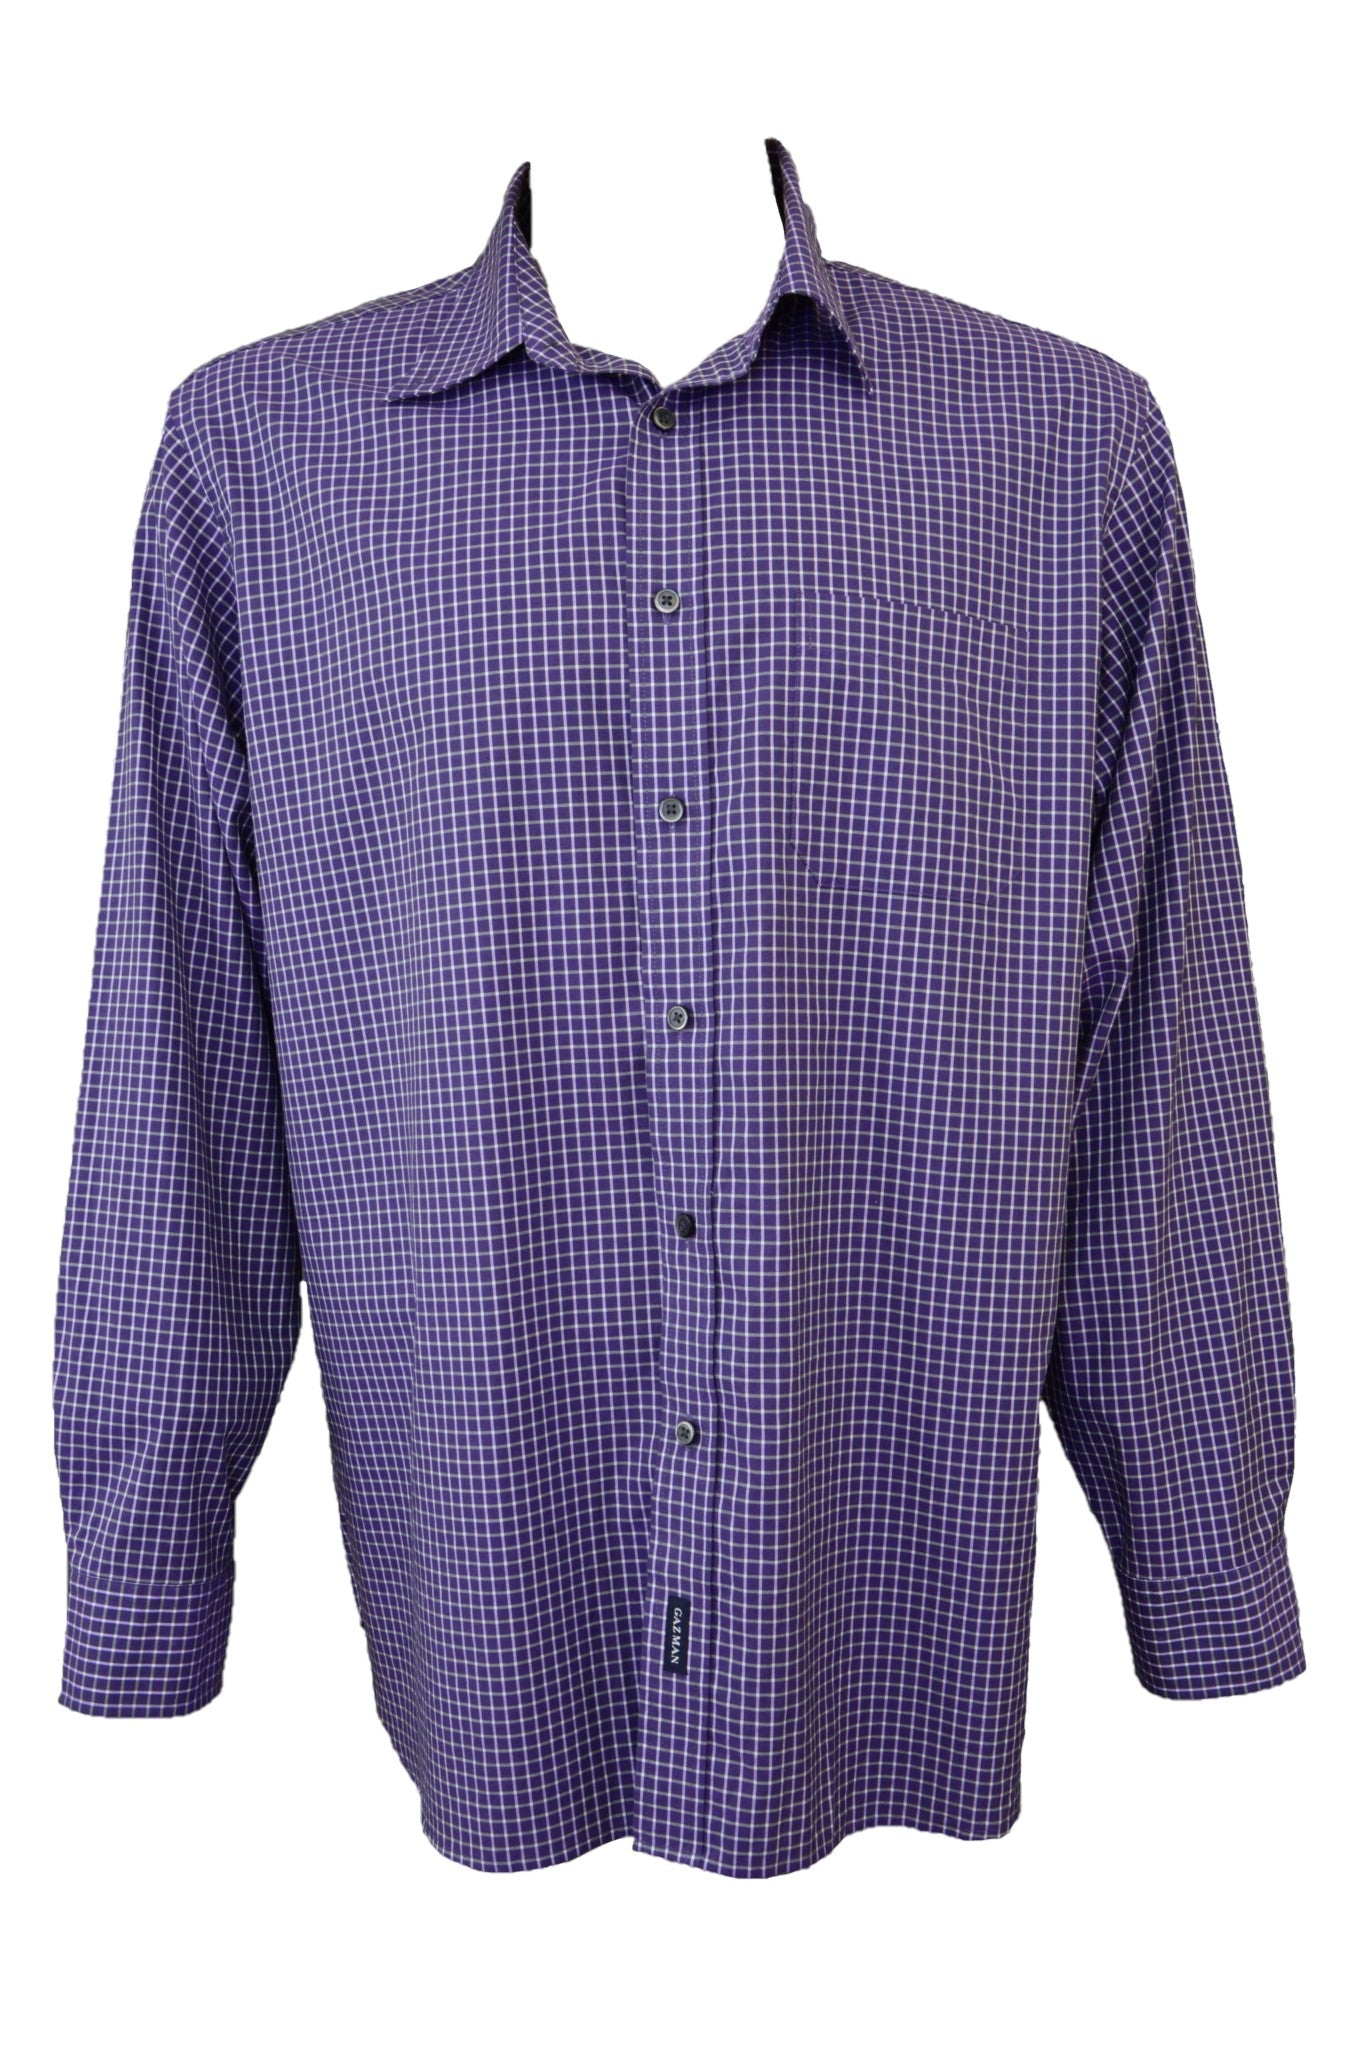 Gazman purple check long-sleeved shirt, front view